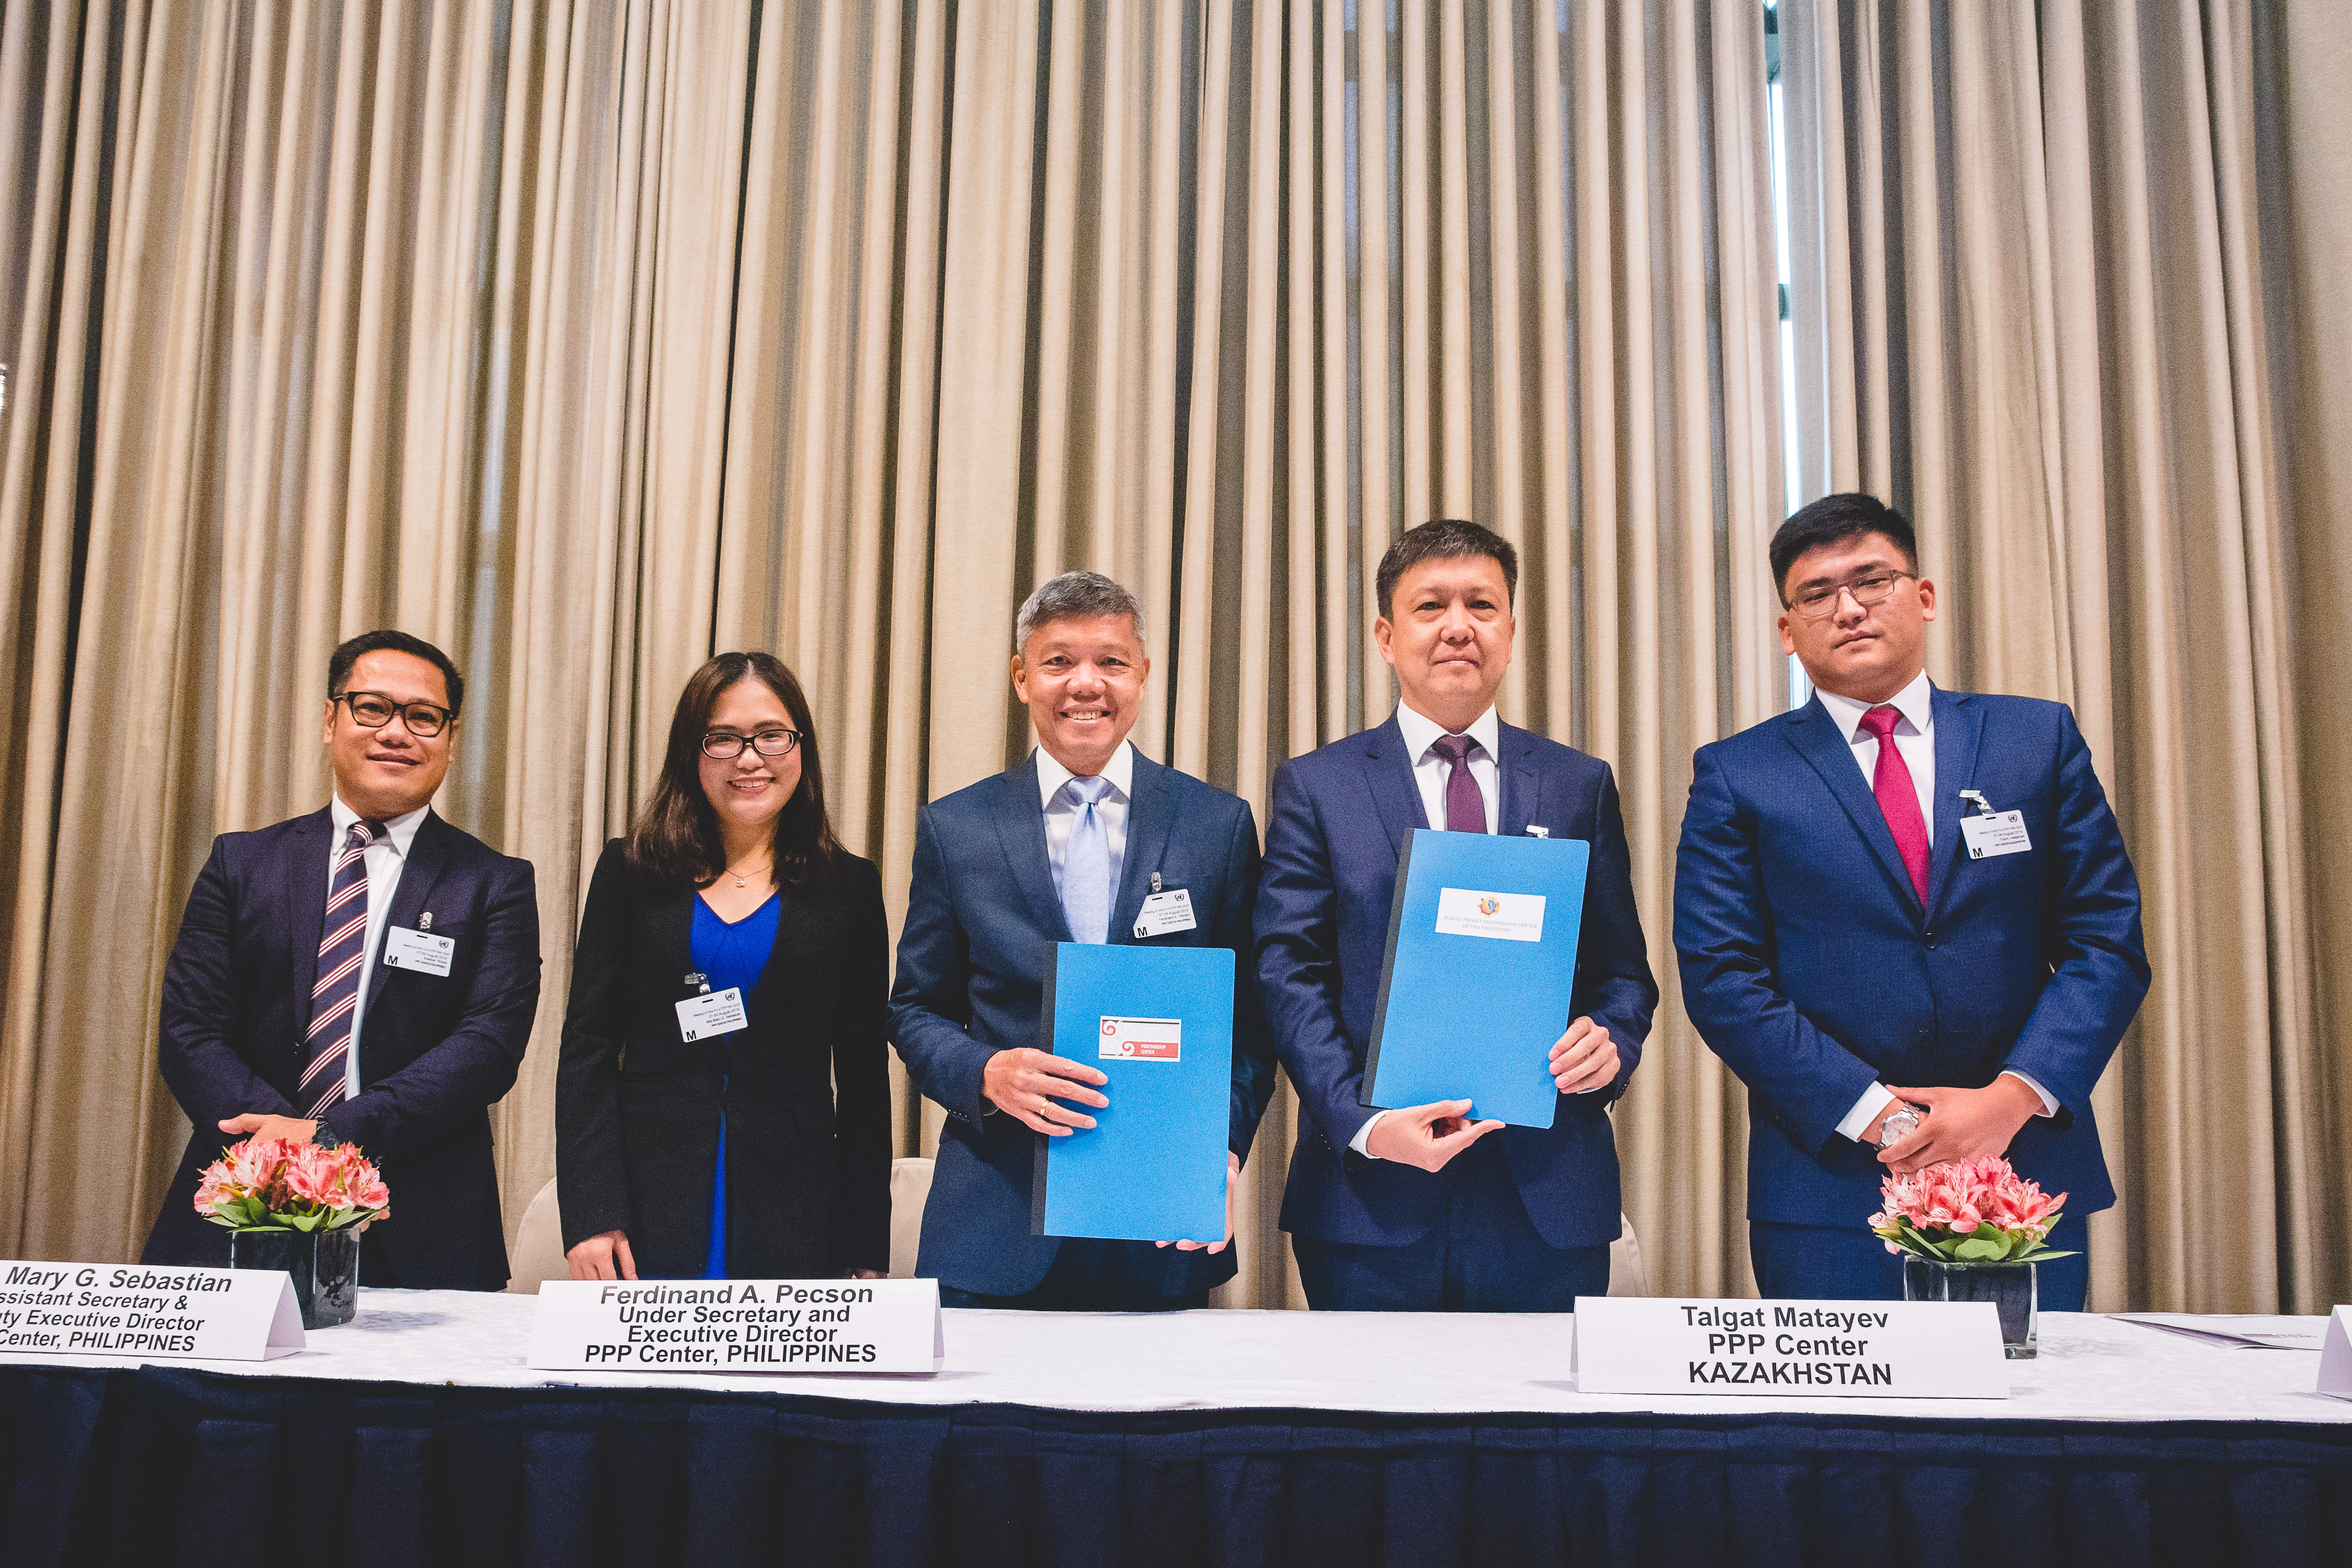 2nd meeting Infrastructure financing and PPP - Manila 7-9 August 2019